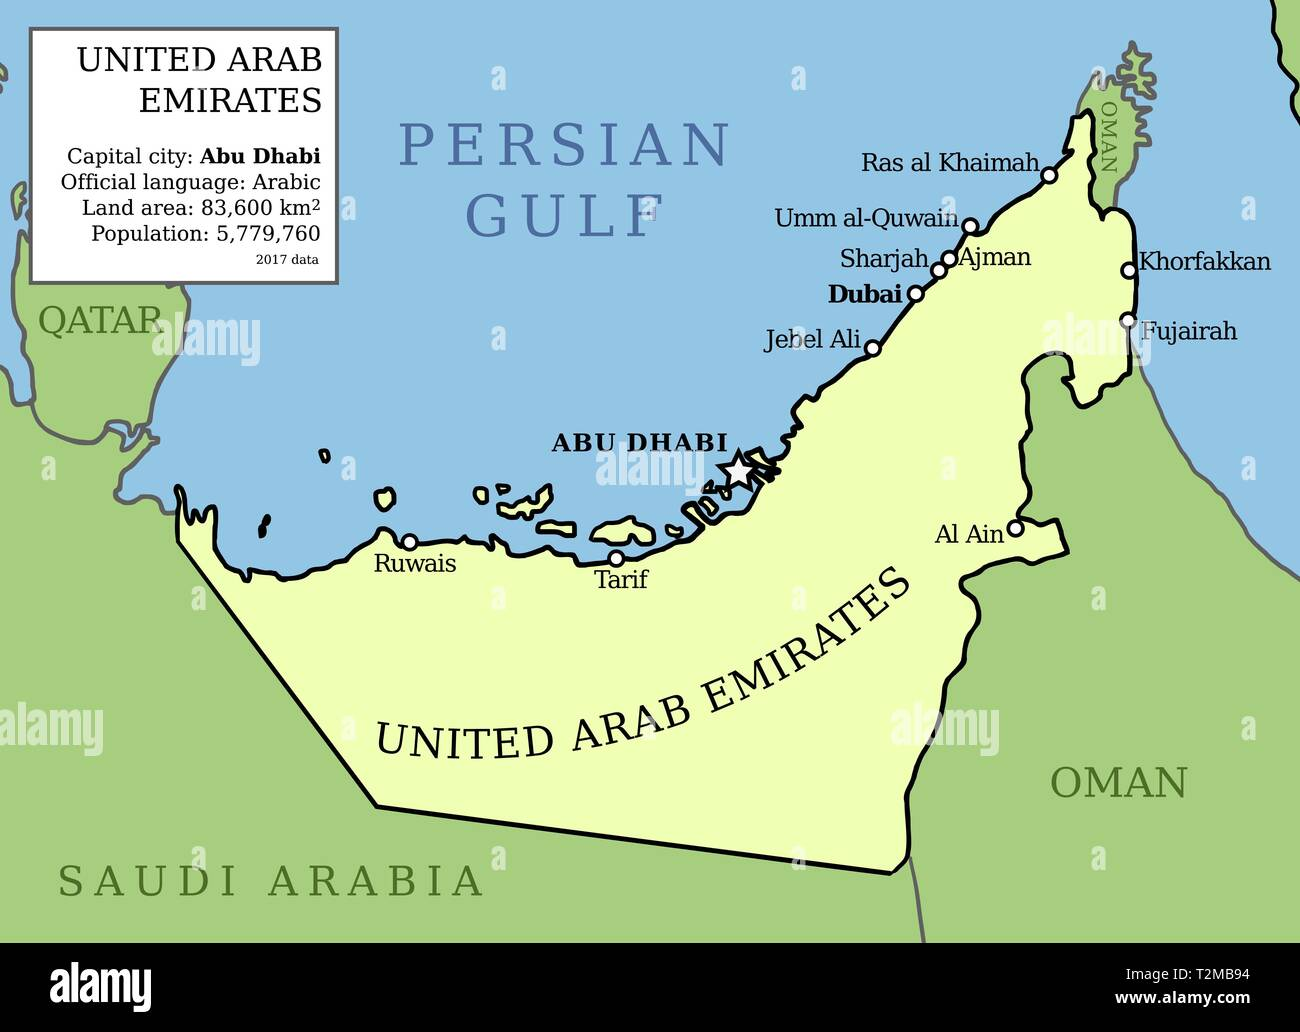 United Arab Emirates Uae Map Outline Vector Country Map With Main Cities And Data Table Stock Vector Image Art Alamy